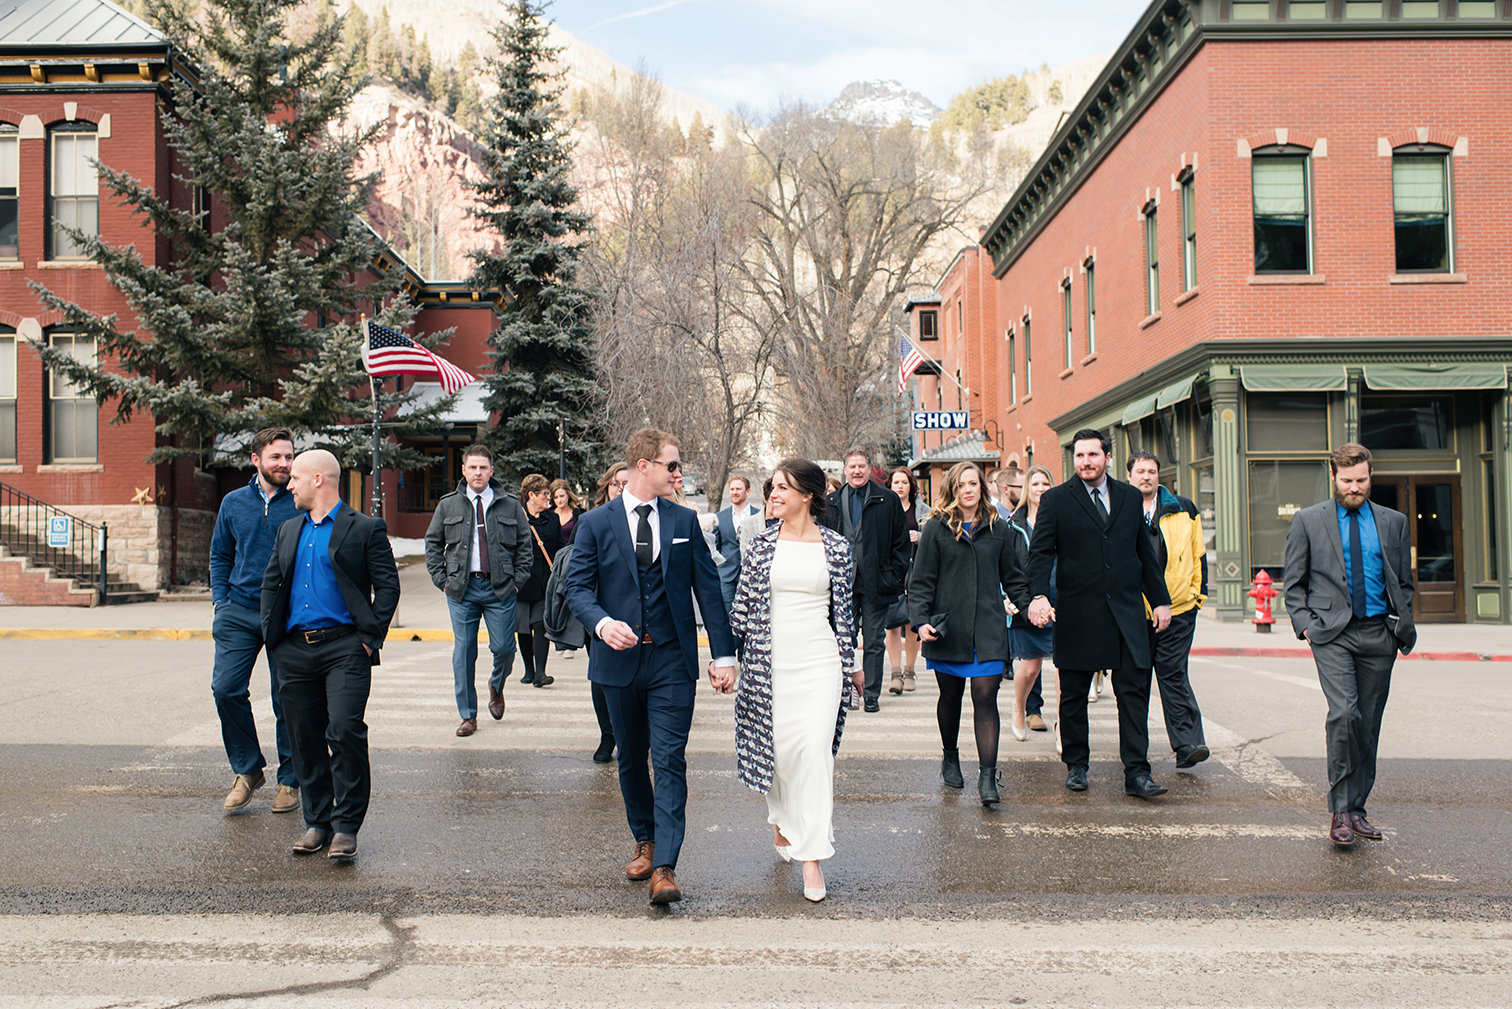 Telluride Wedding, Colorado Destination Wedding, Colorado Photographer, Colorado Wedding Photography, Wedding Party